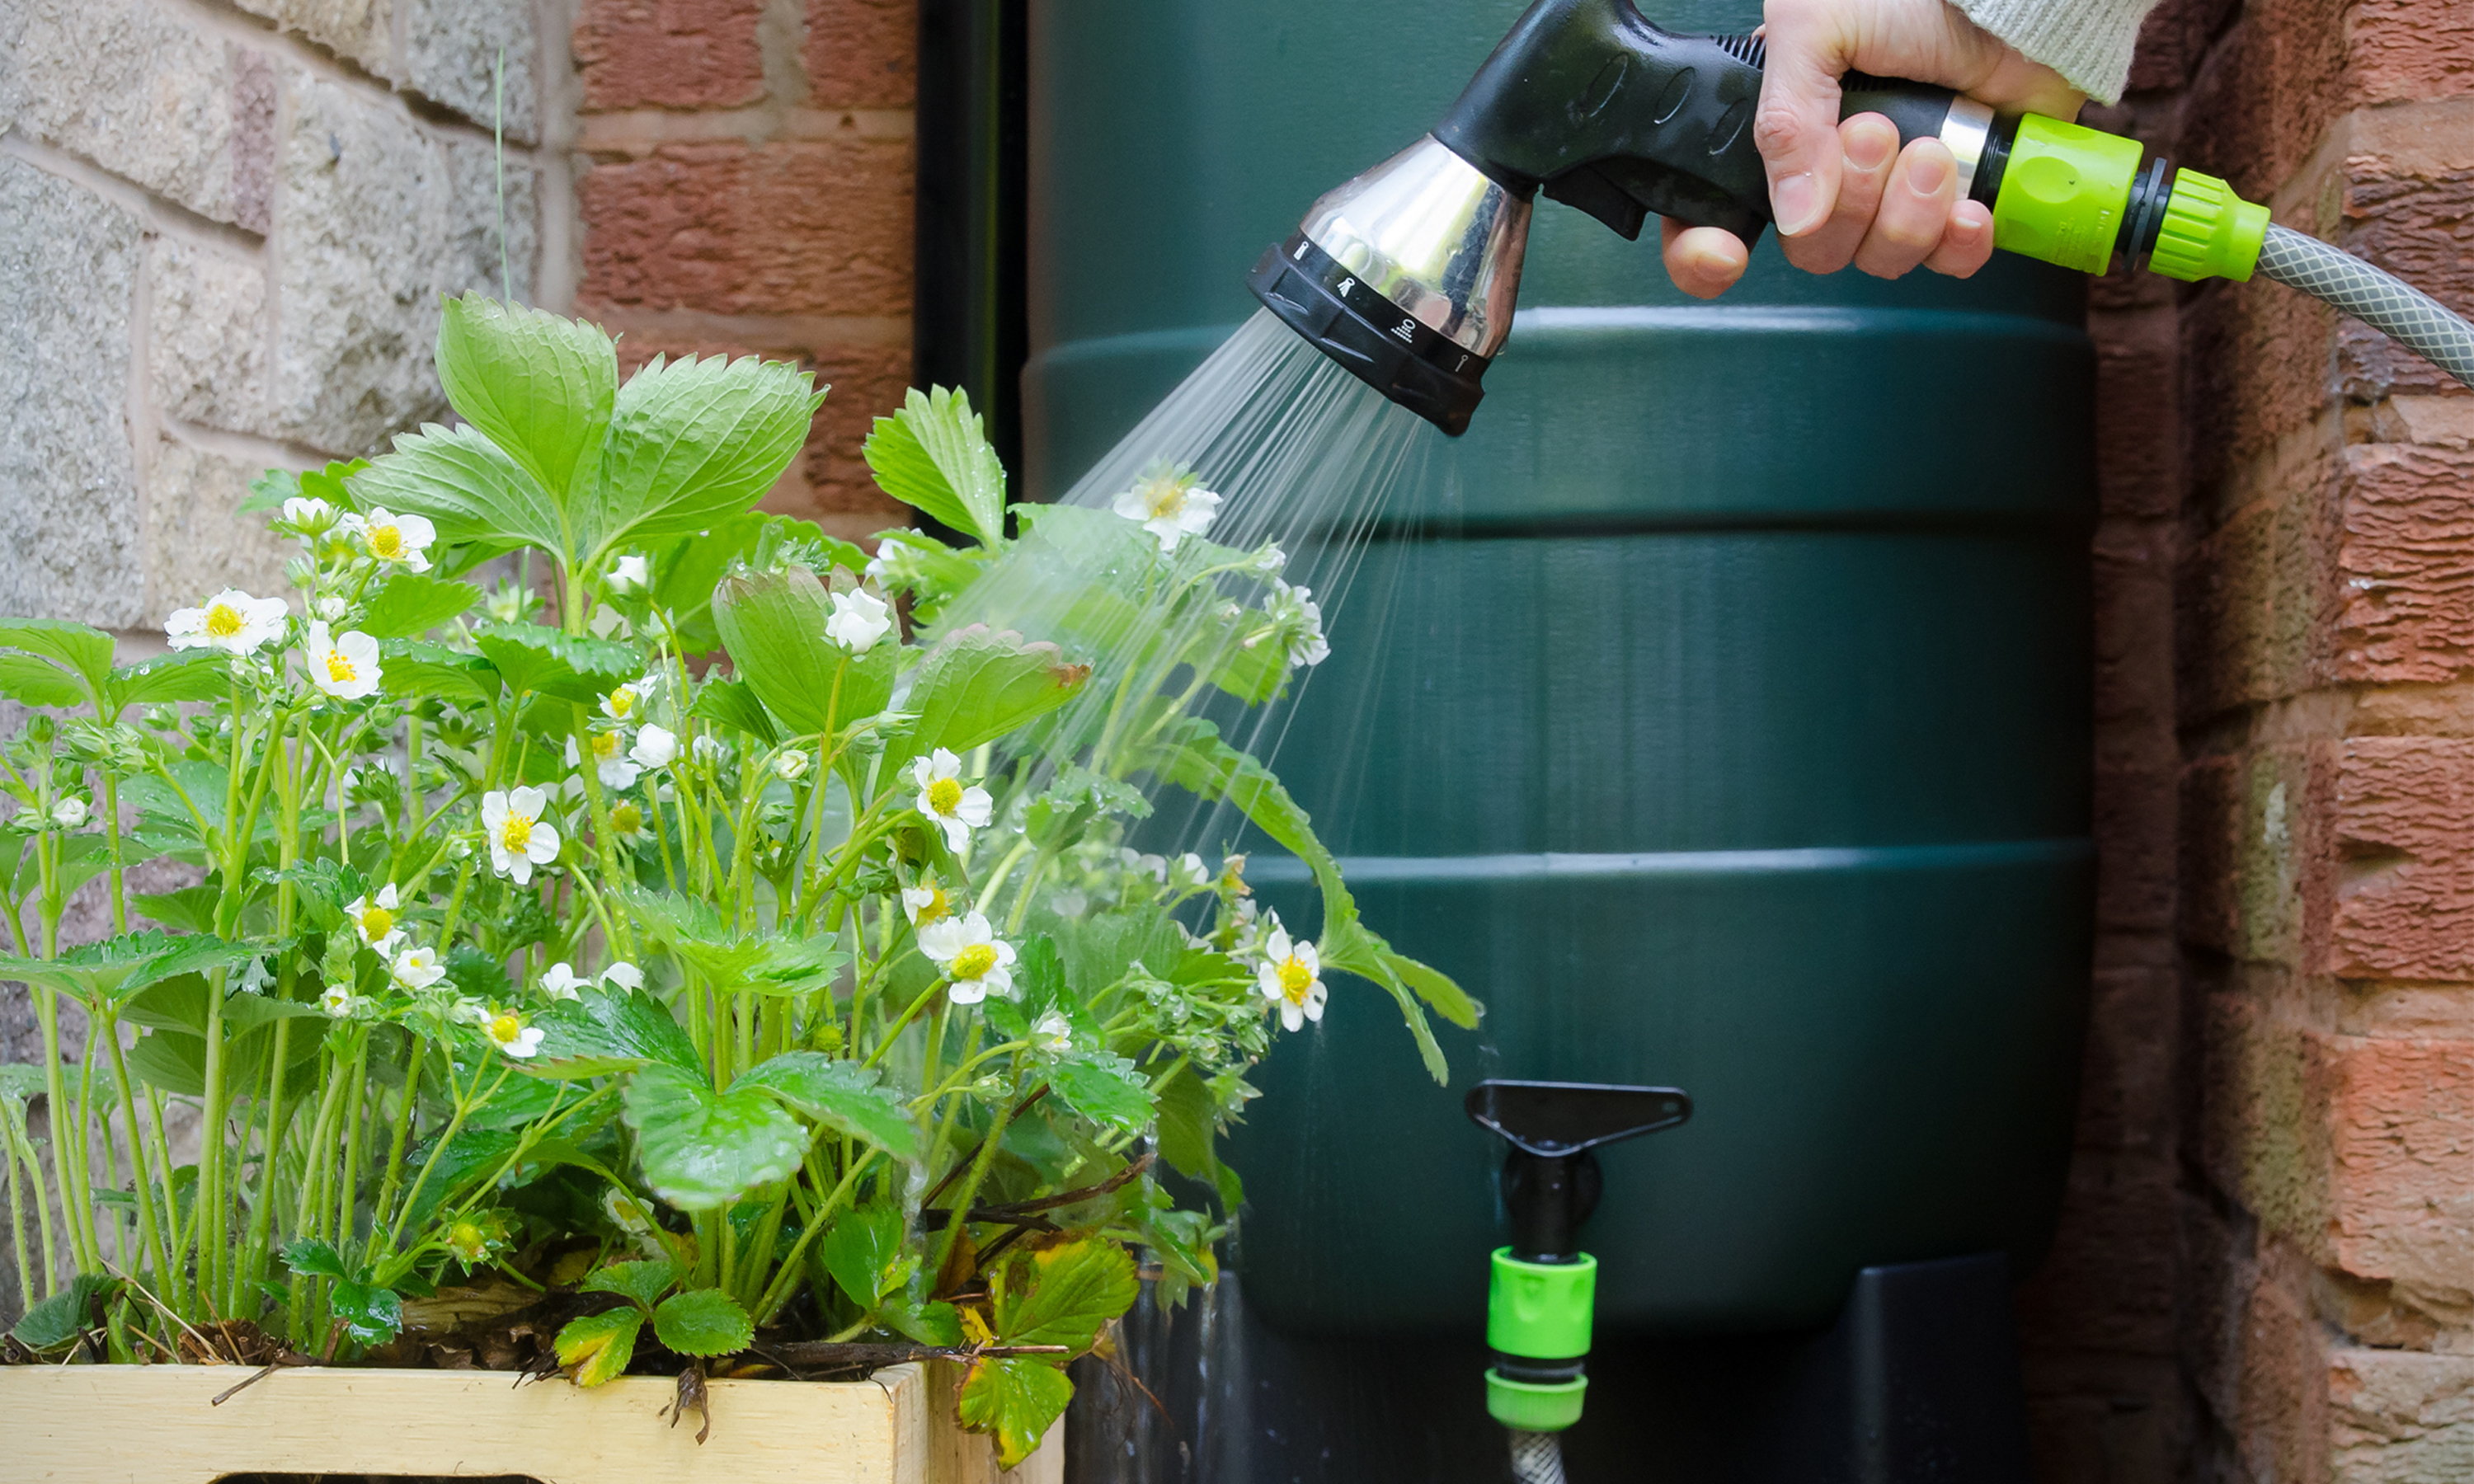 Person watering plants using water collected in rain barrel